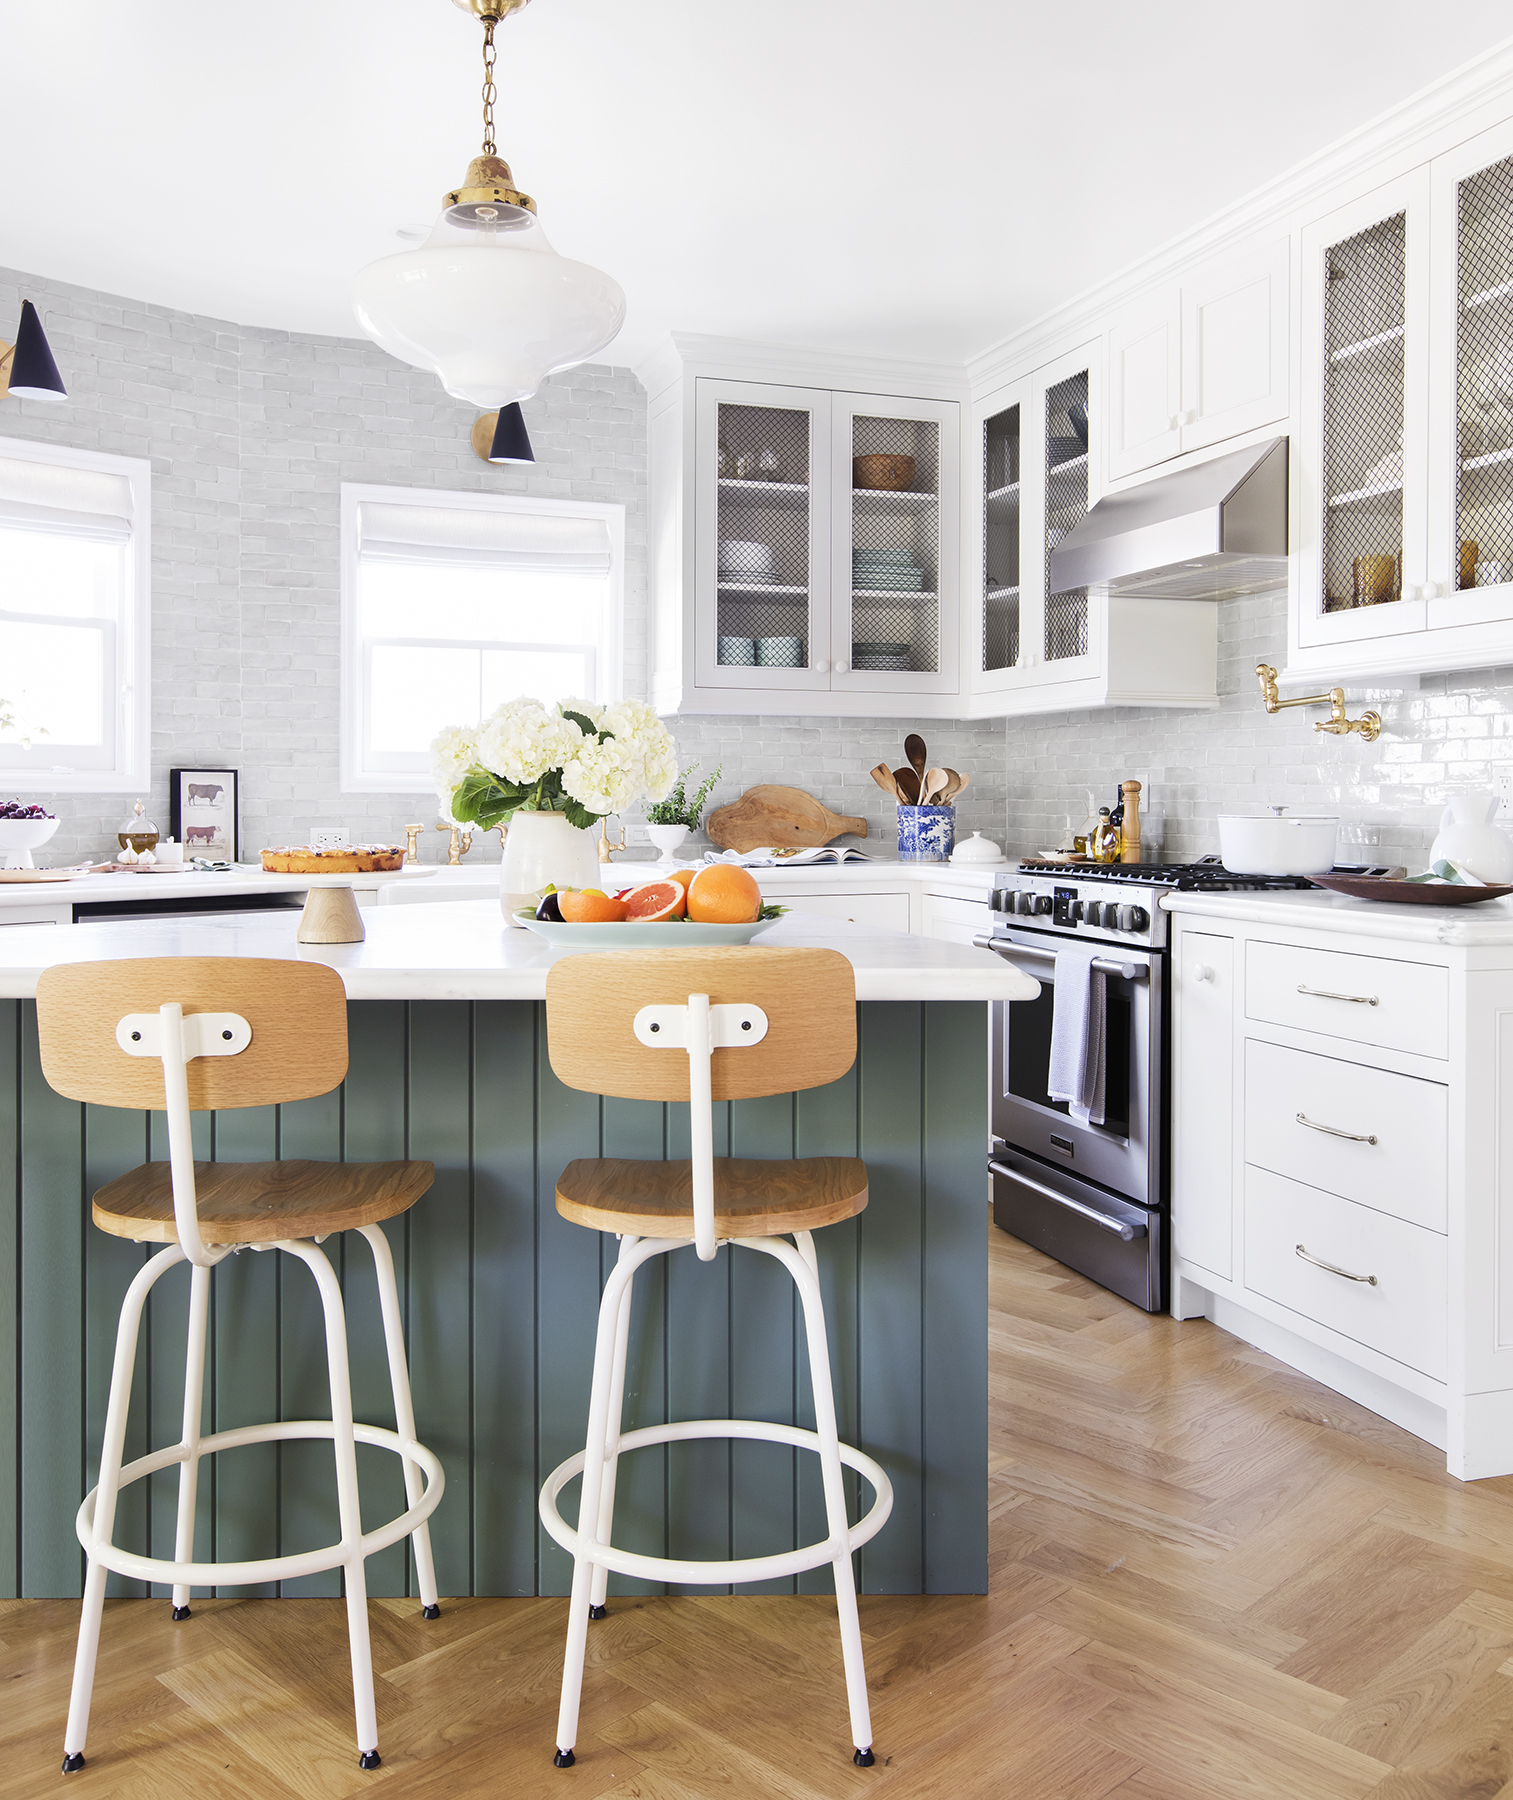 5 Kitchen Storage Spots You're Probably Not Making the Most of